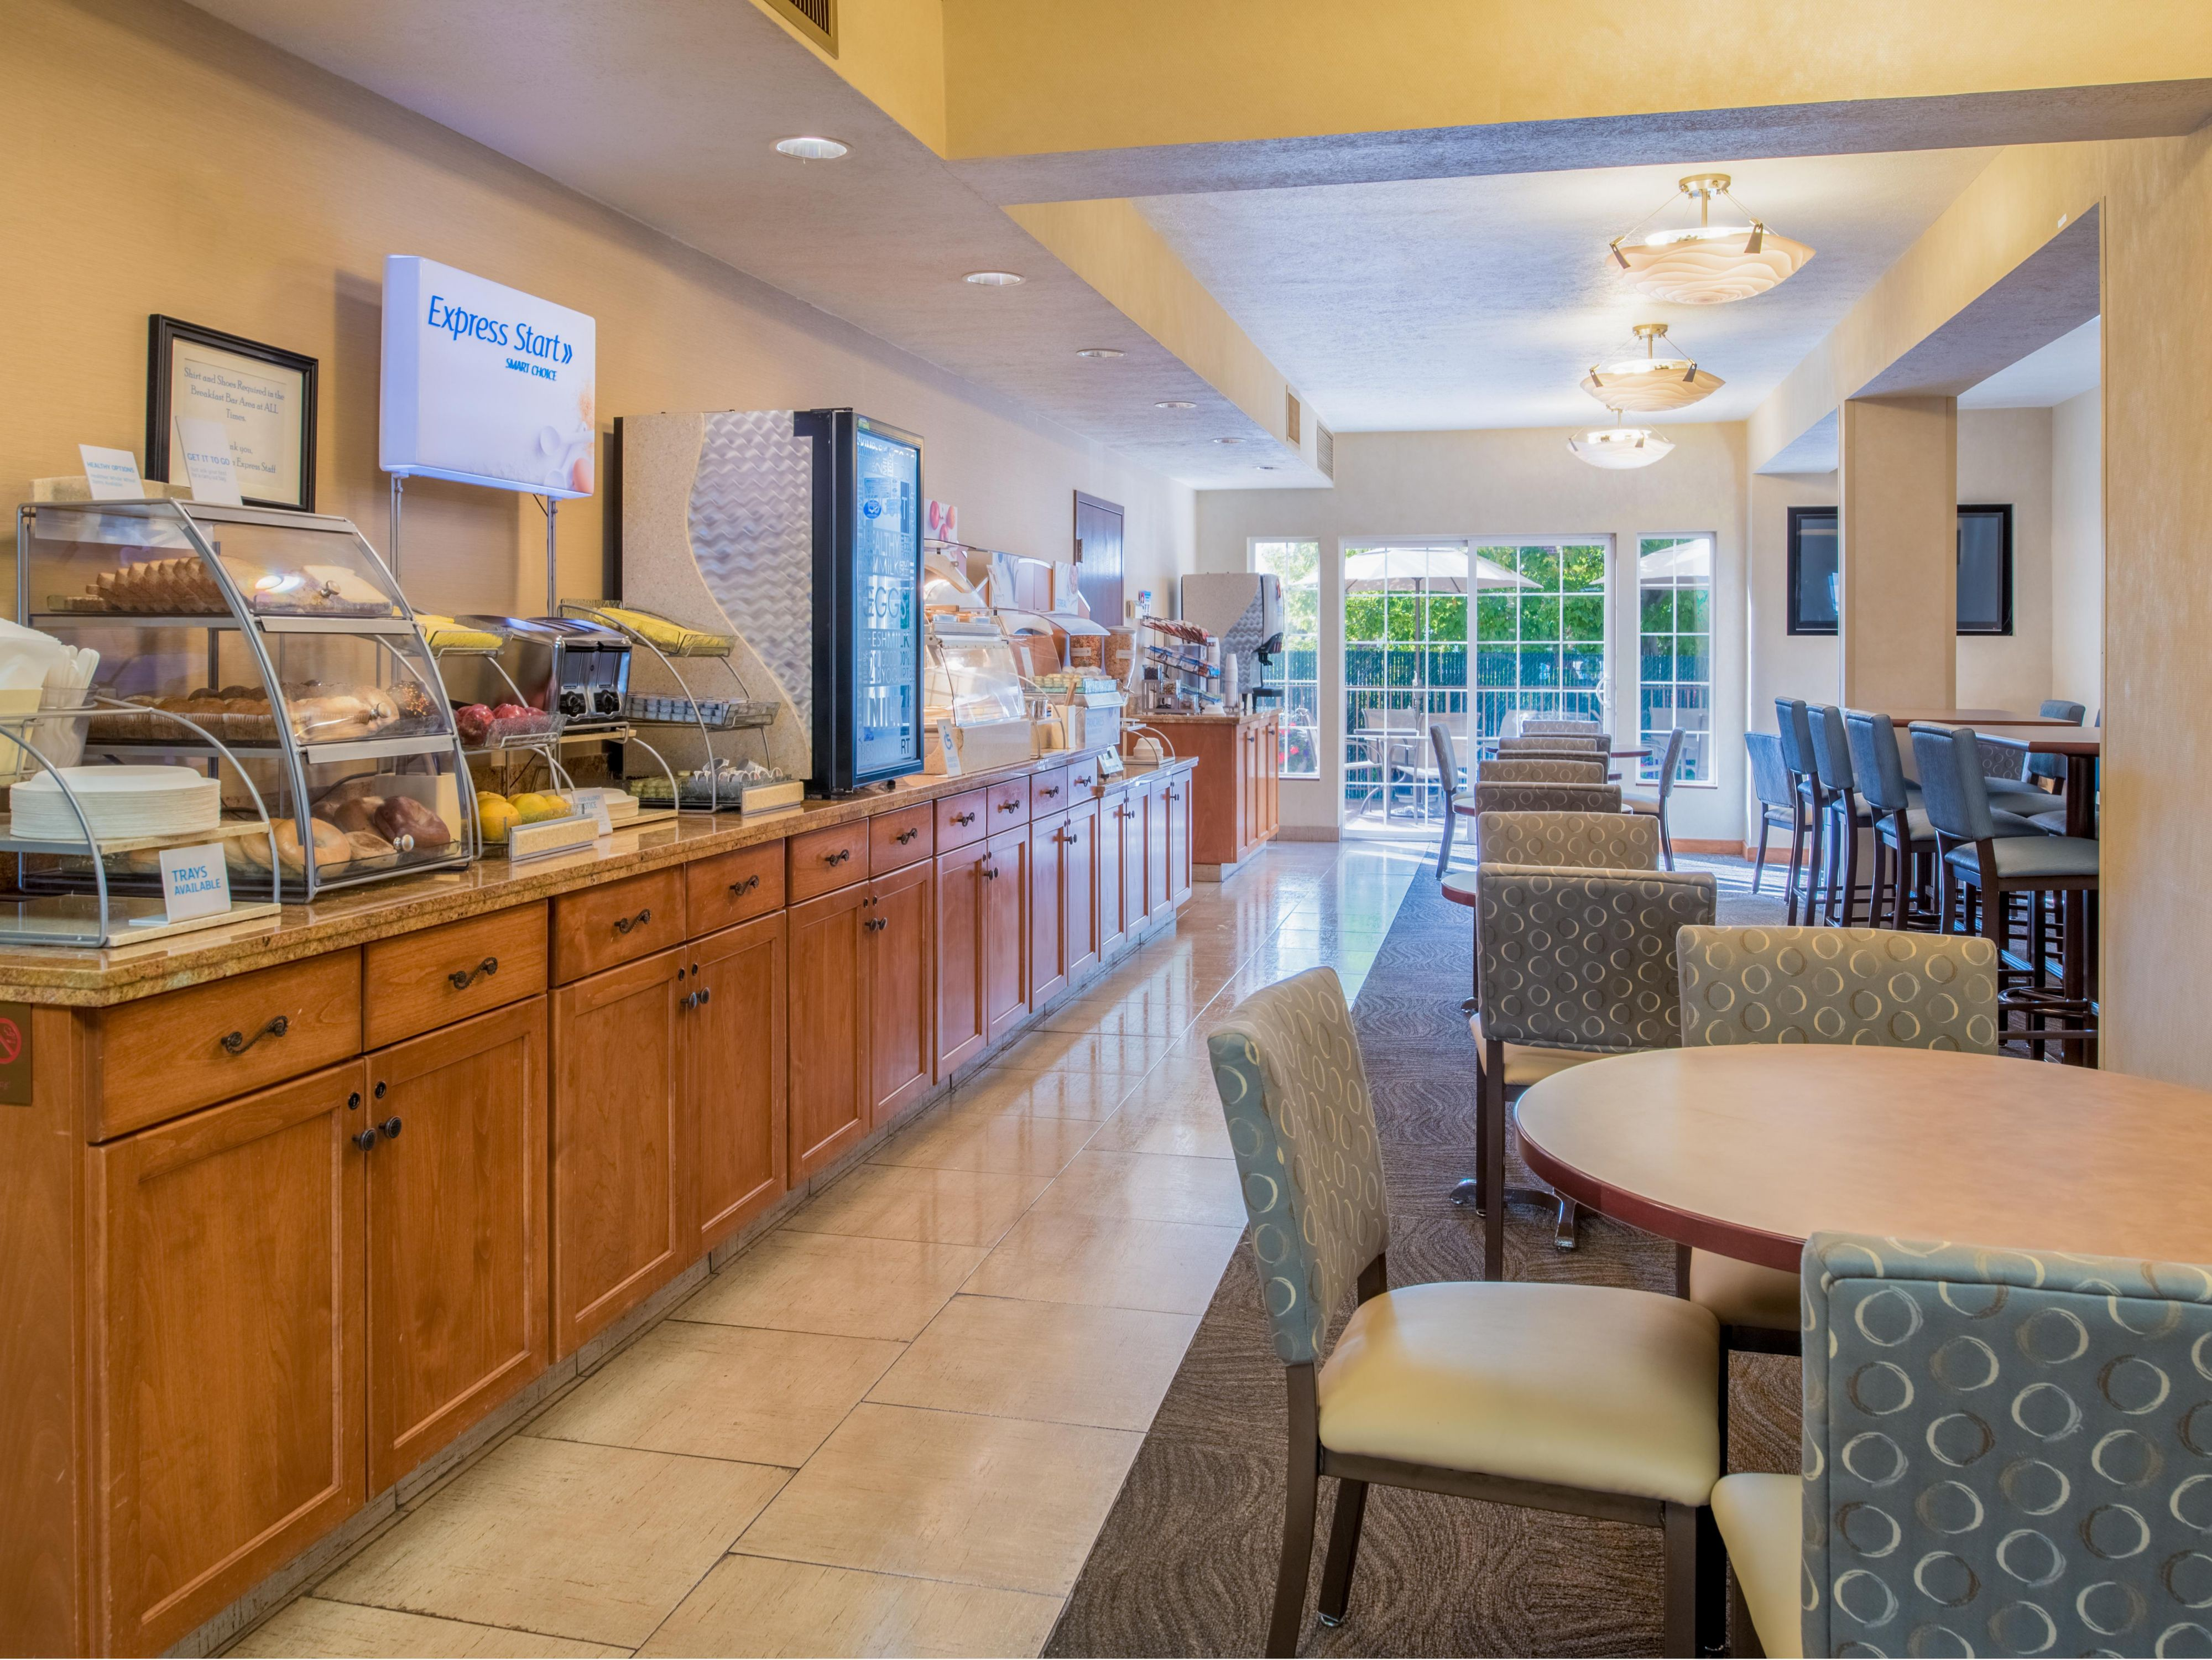 Enjoy a Hot Breakfast Buffet in our spacious Breakfast Bar